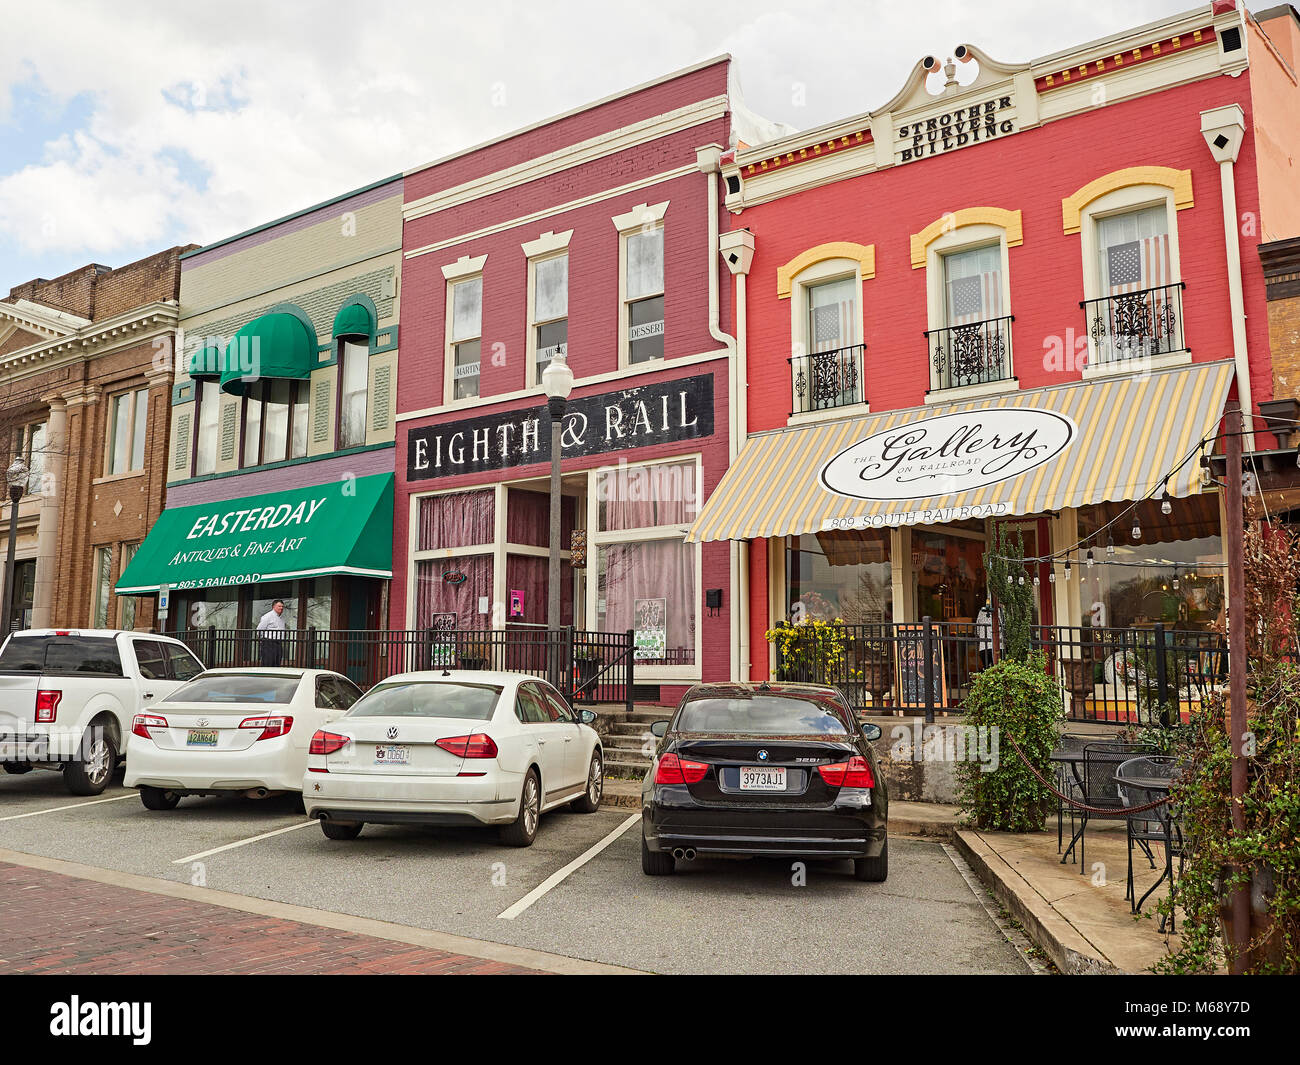 Small quaint shops with fancy storefronts in small town America line the street in Opelika Alabama, USA. - Stock Image